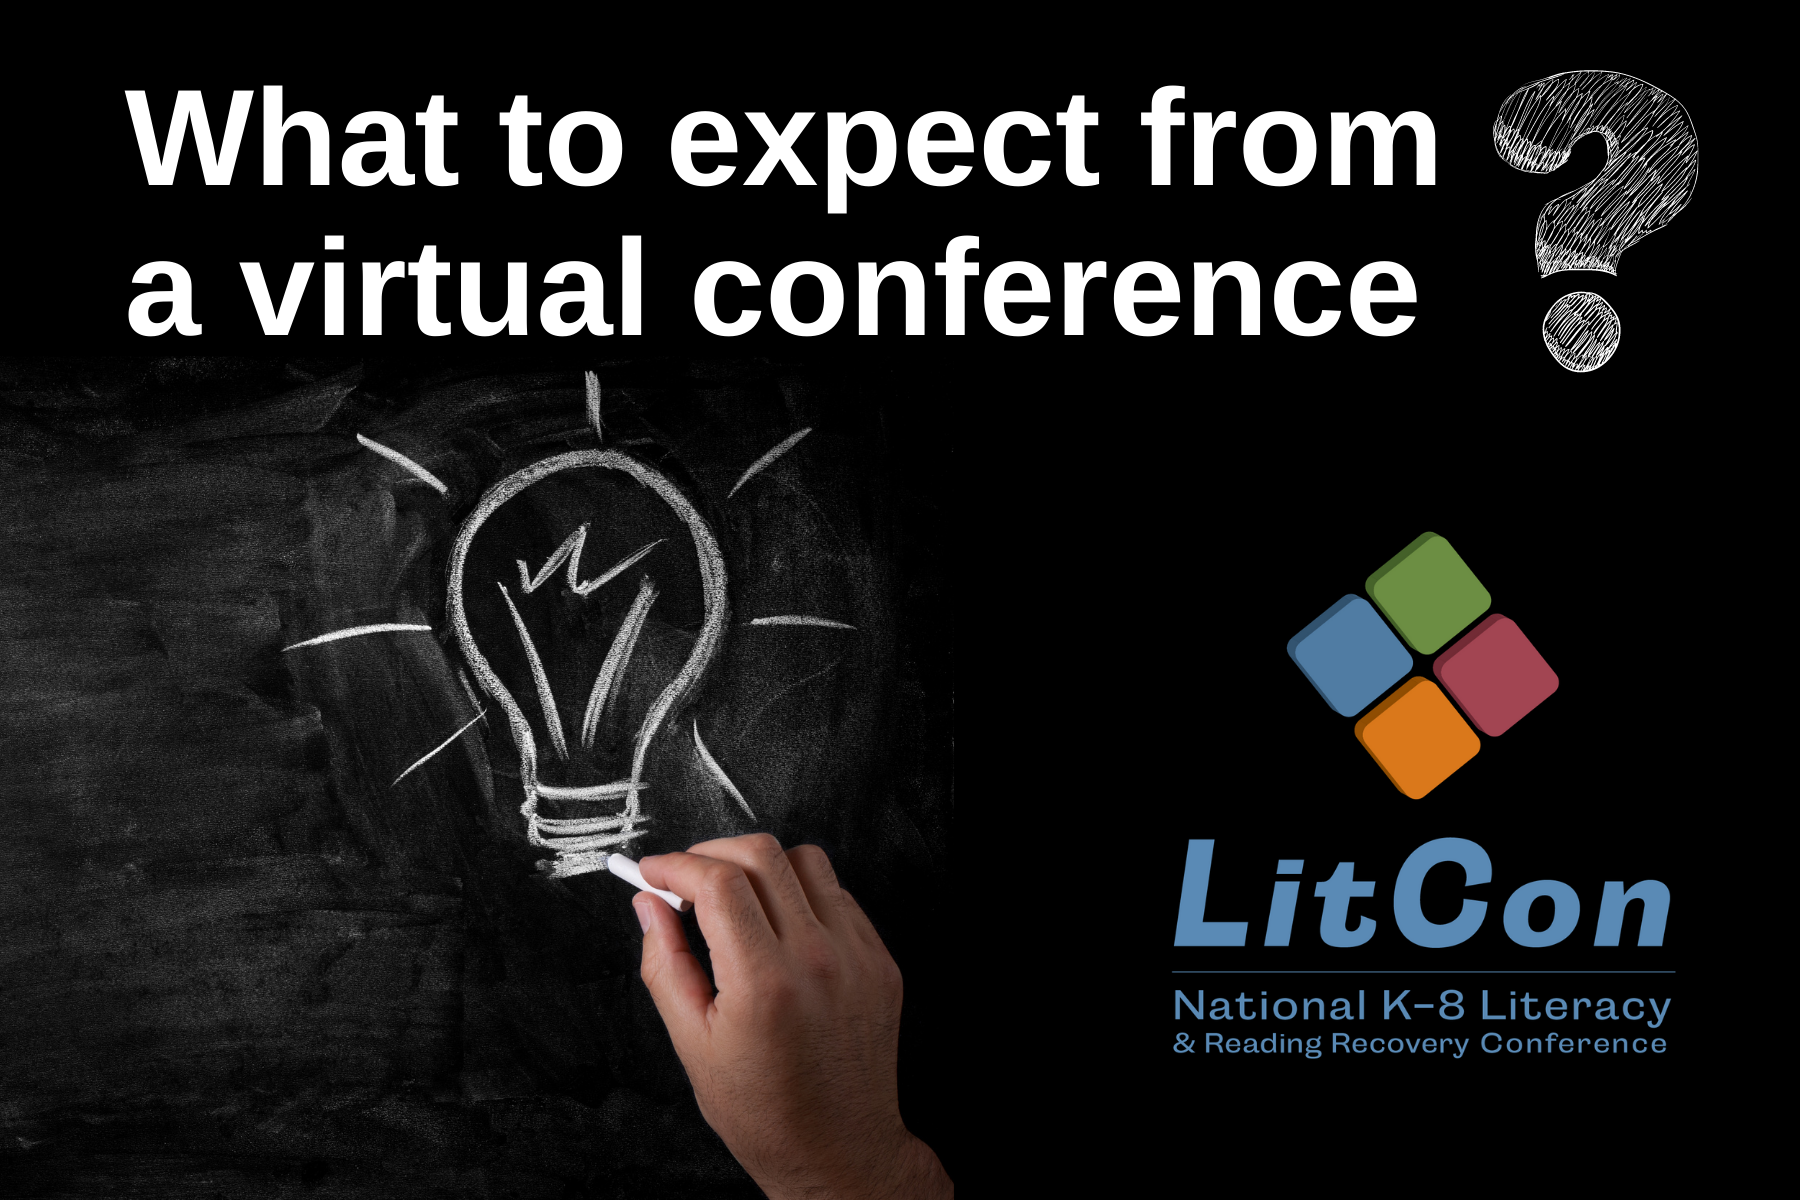 3 Ways to Learn at LitCon